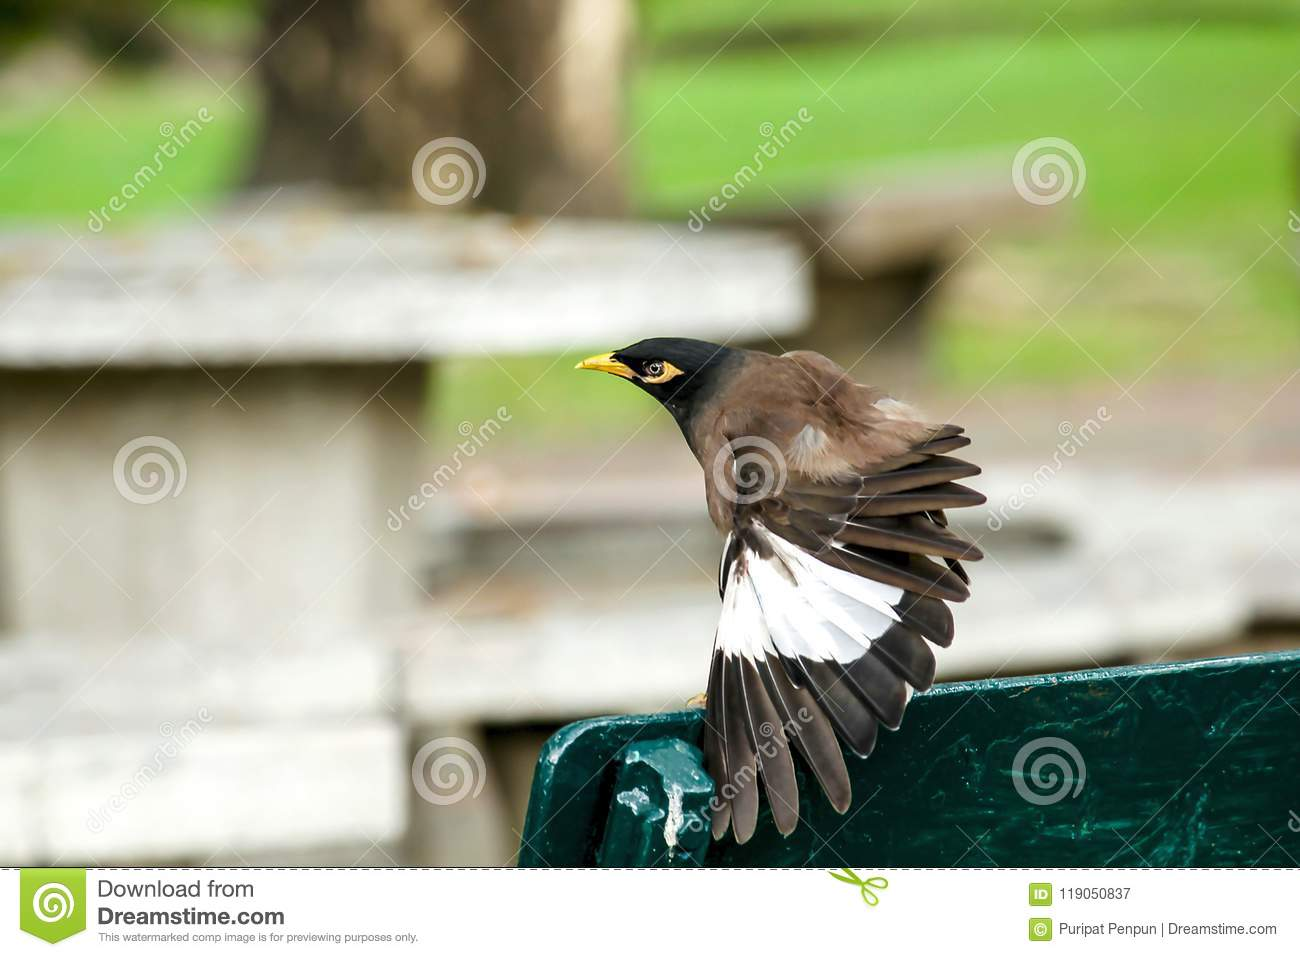 Mynas is on a green chair in the park.